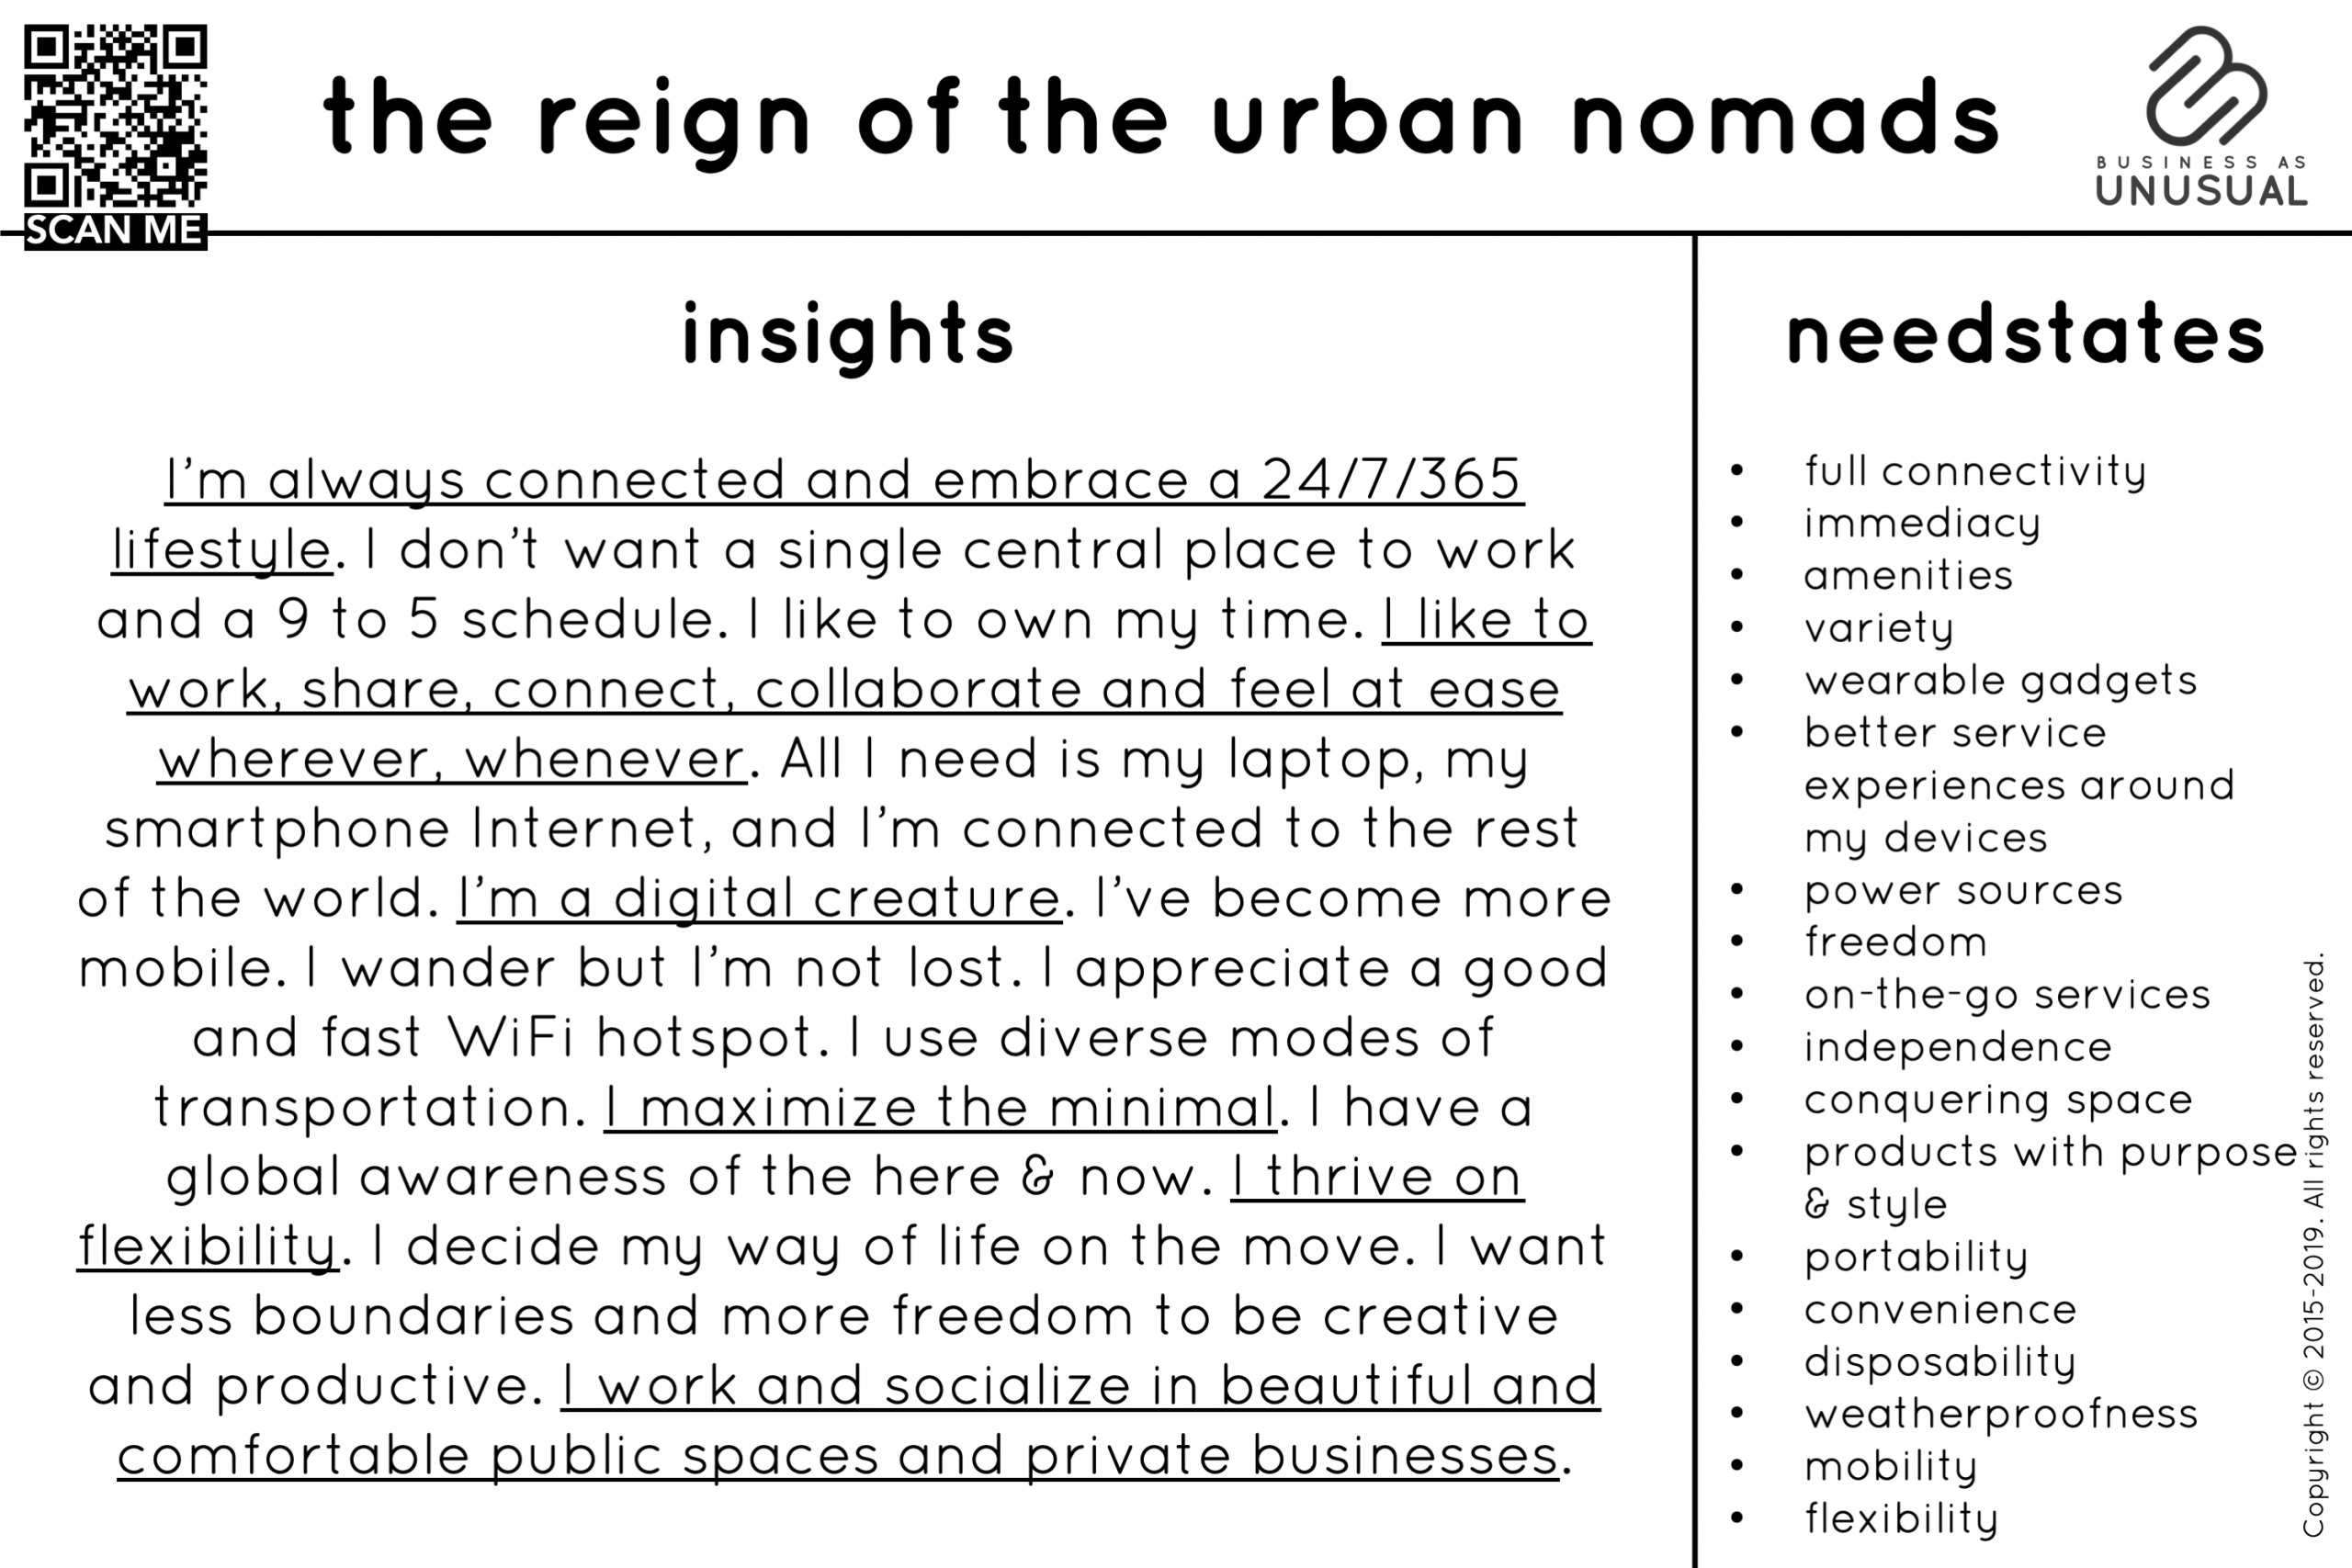 Behavioral Trends - The Reign of the Urban Nomads